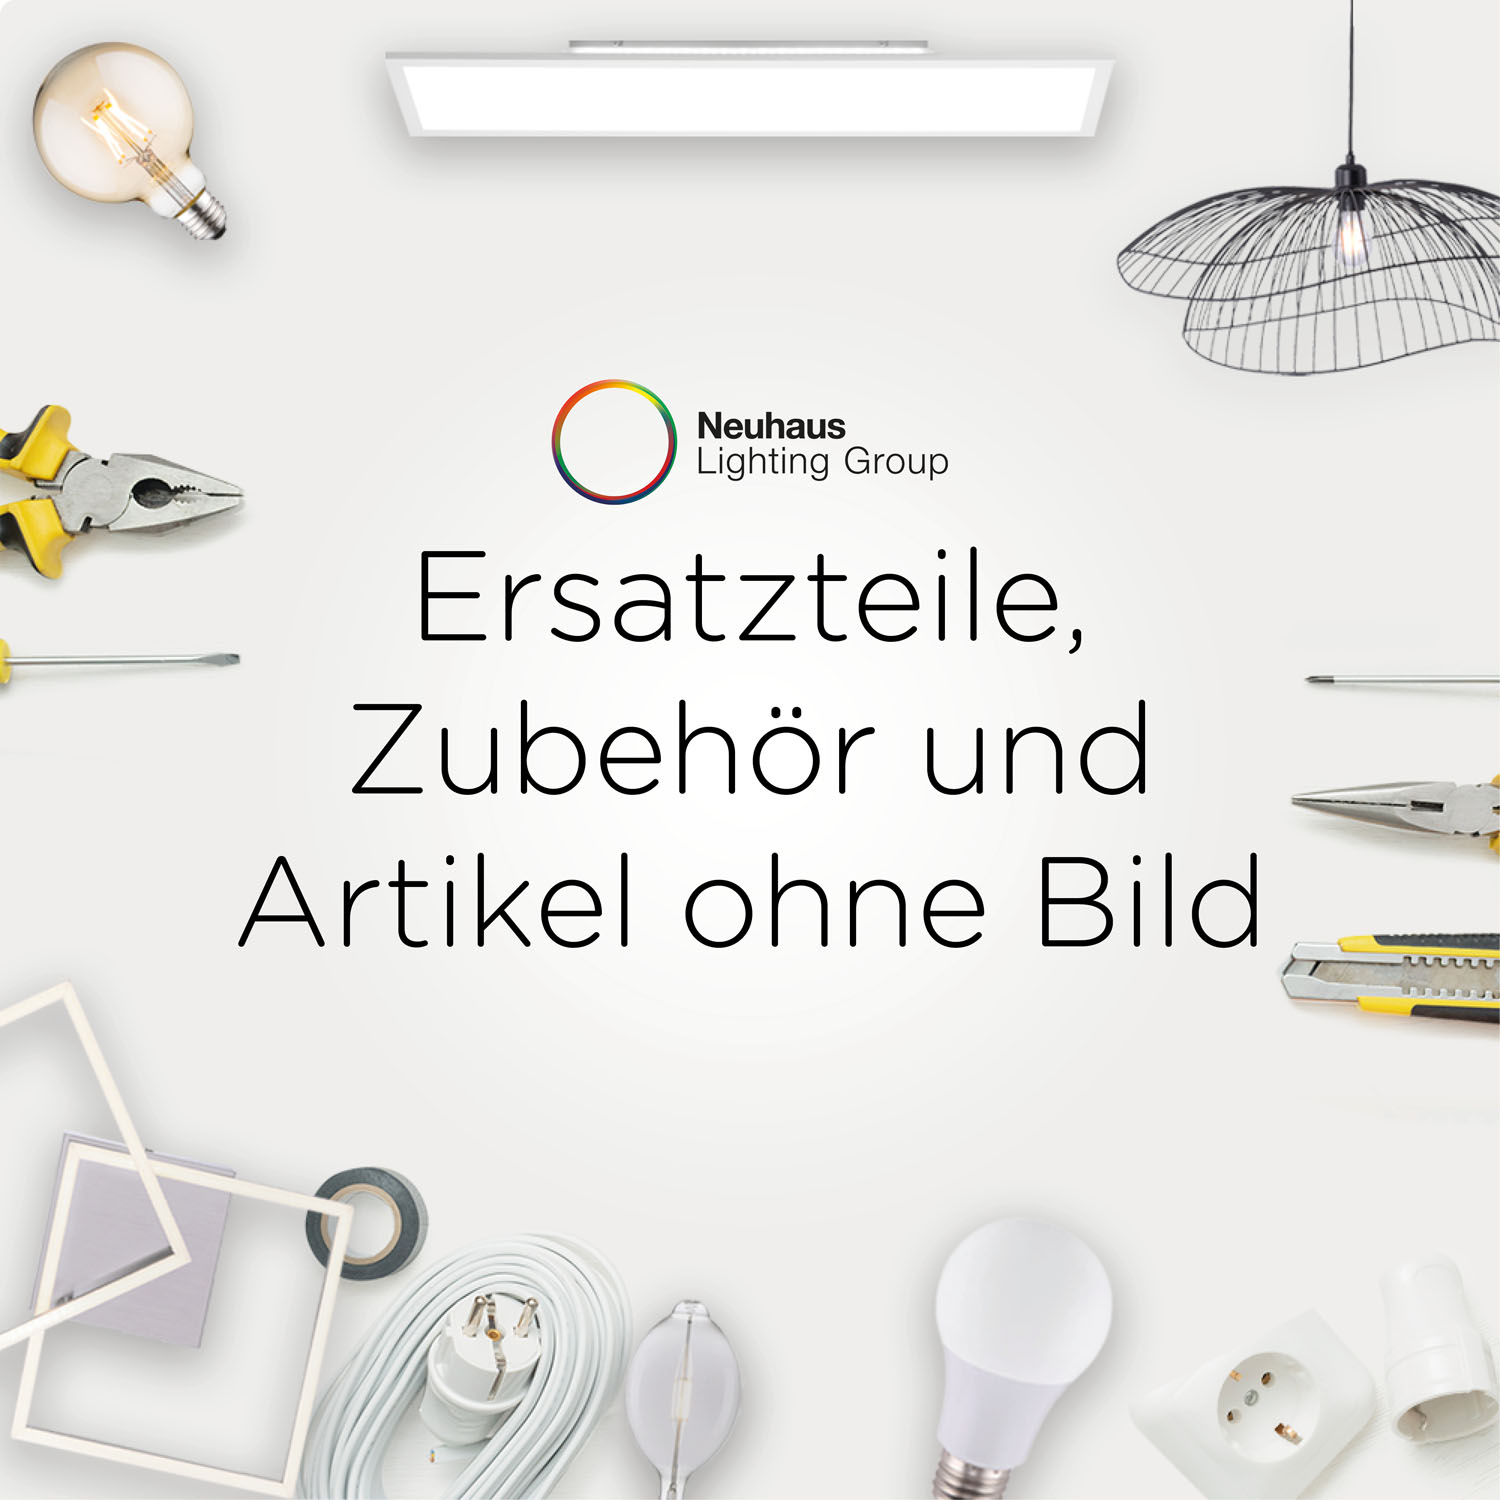 Q-FISHEYE, Pendelleuchte, Smart Home